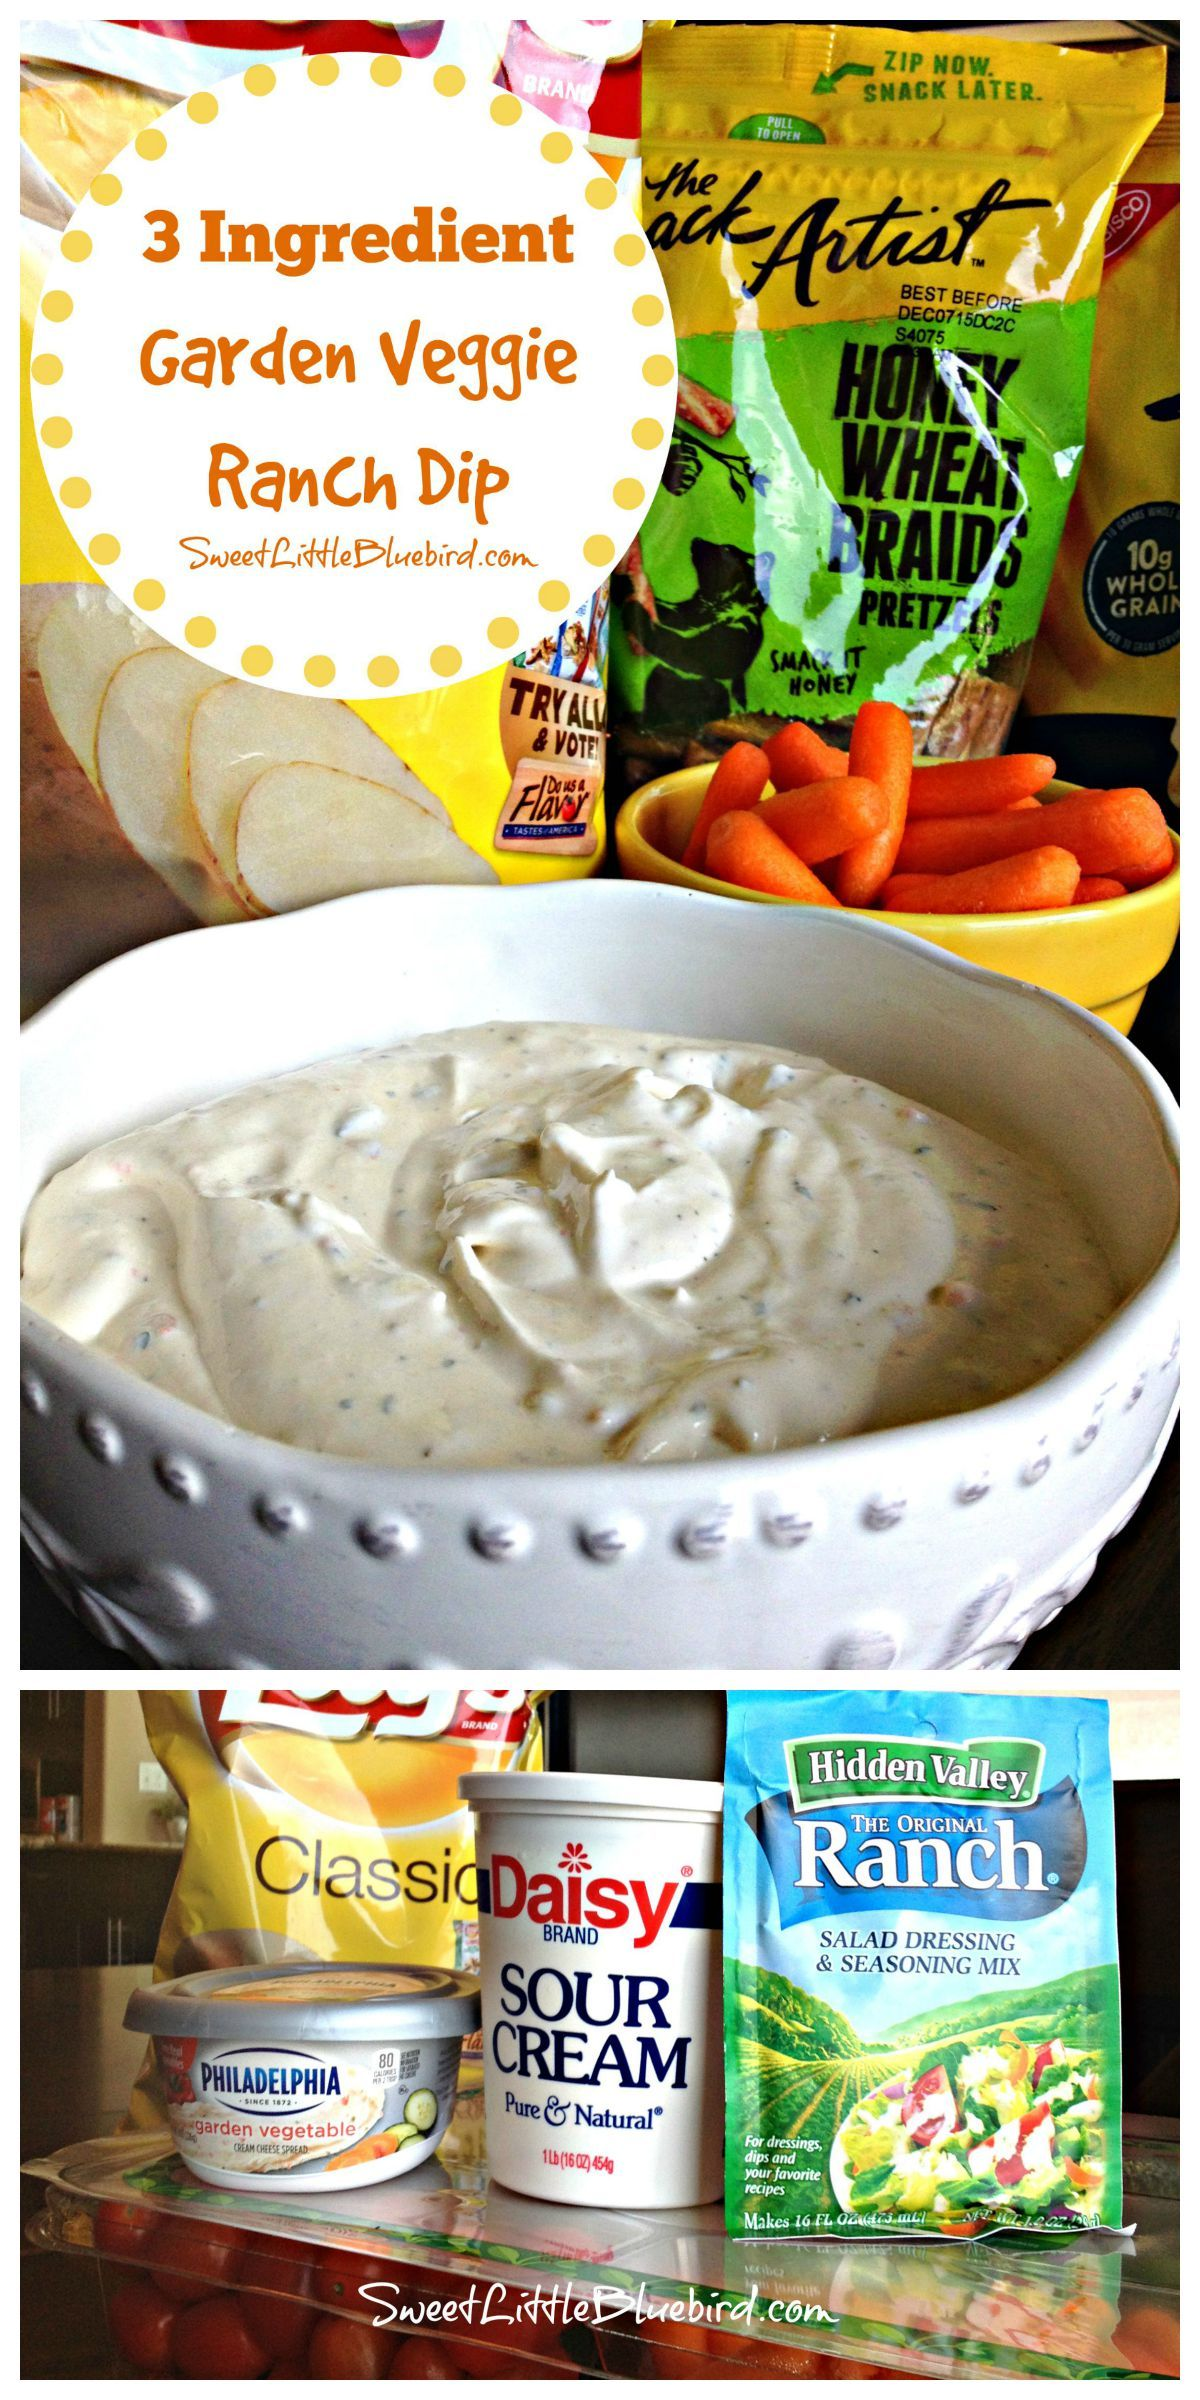 recipe: hidden valley ranch dip recipe with sour cream [4]